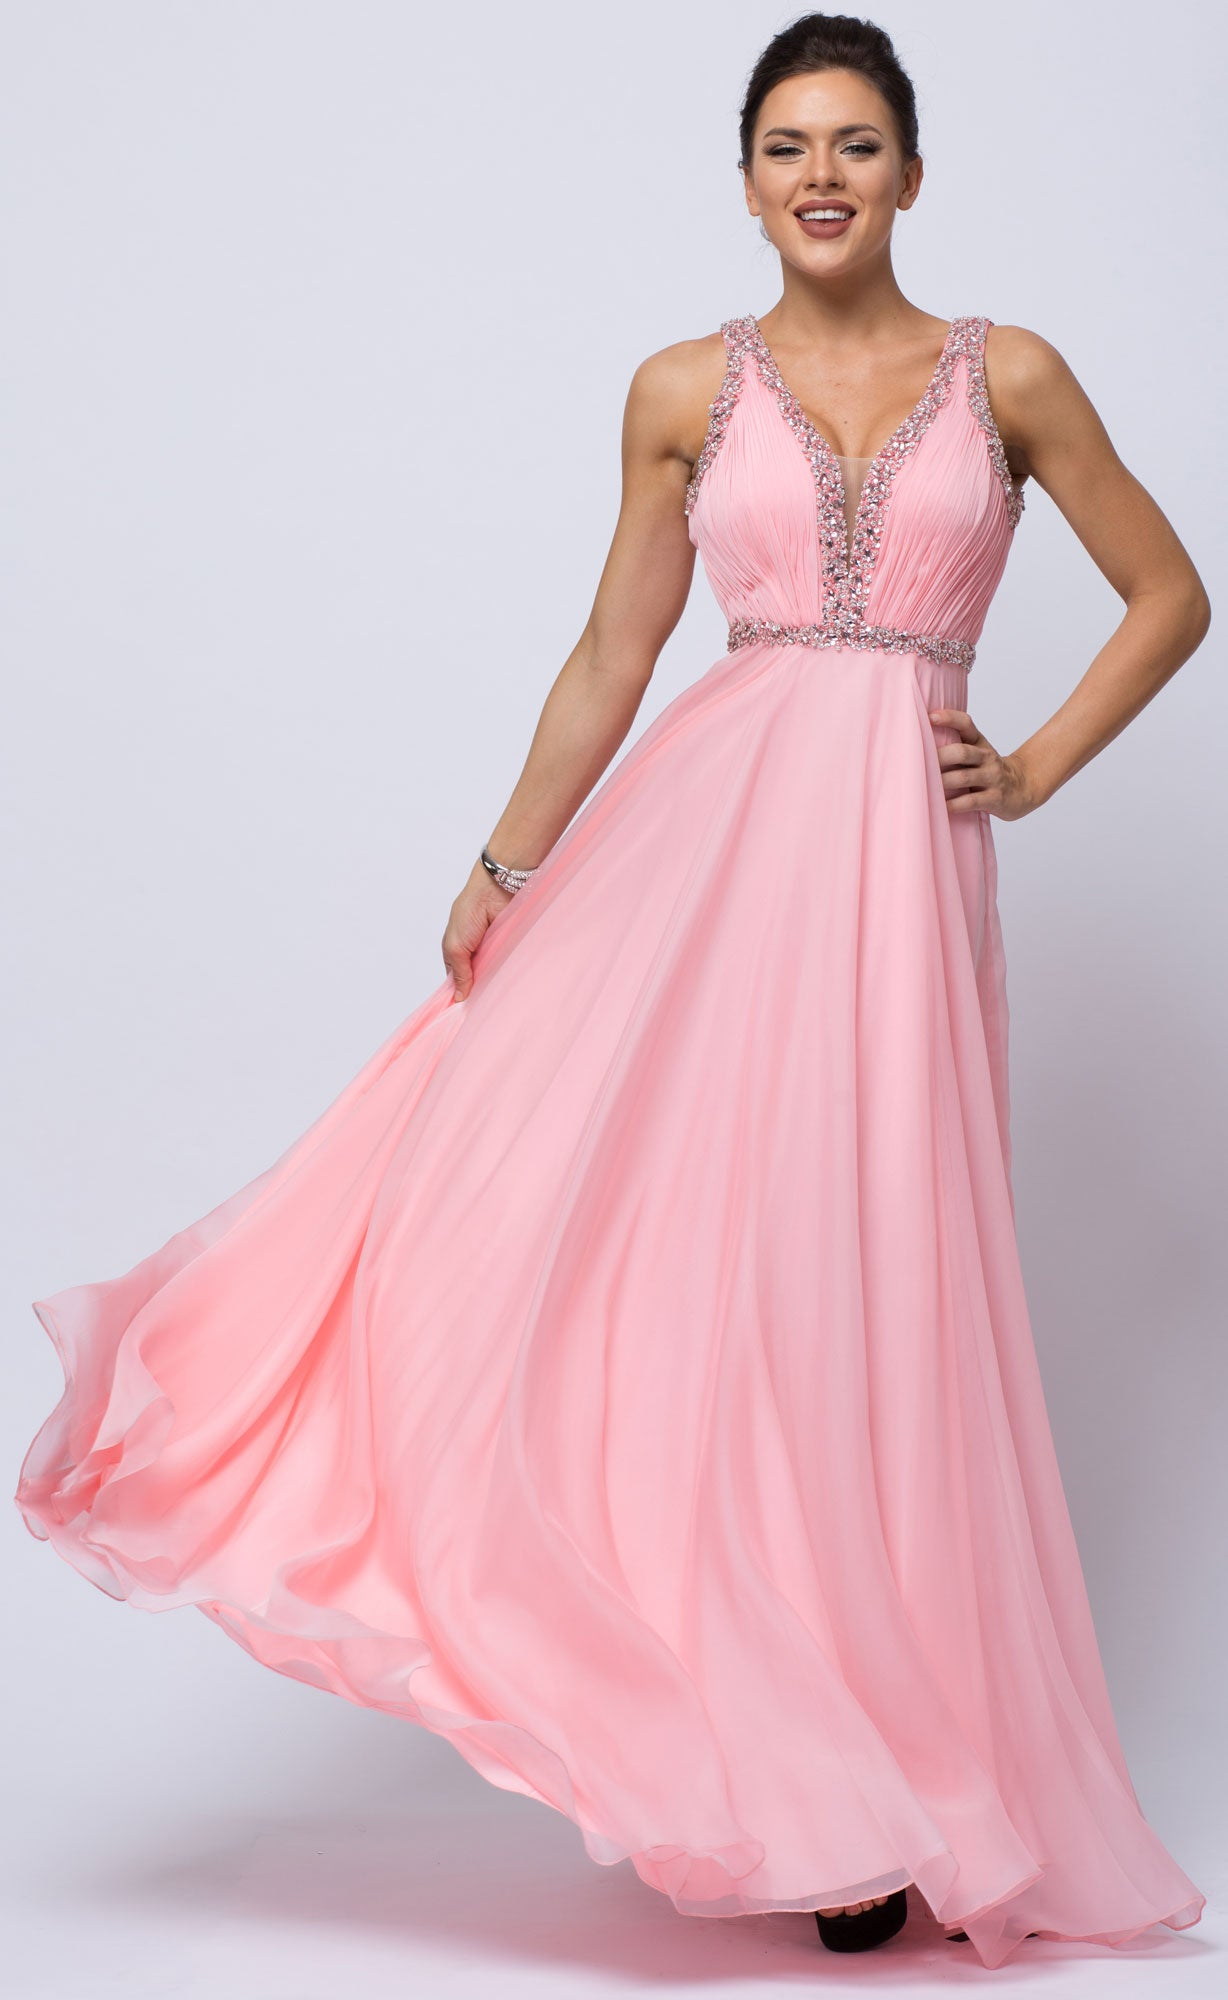 Main image of Sequined Shirred Bodice A-line Chiffon Long Prom Dress